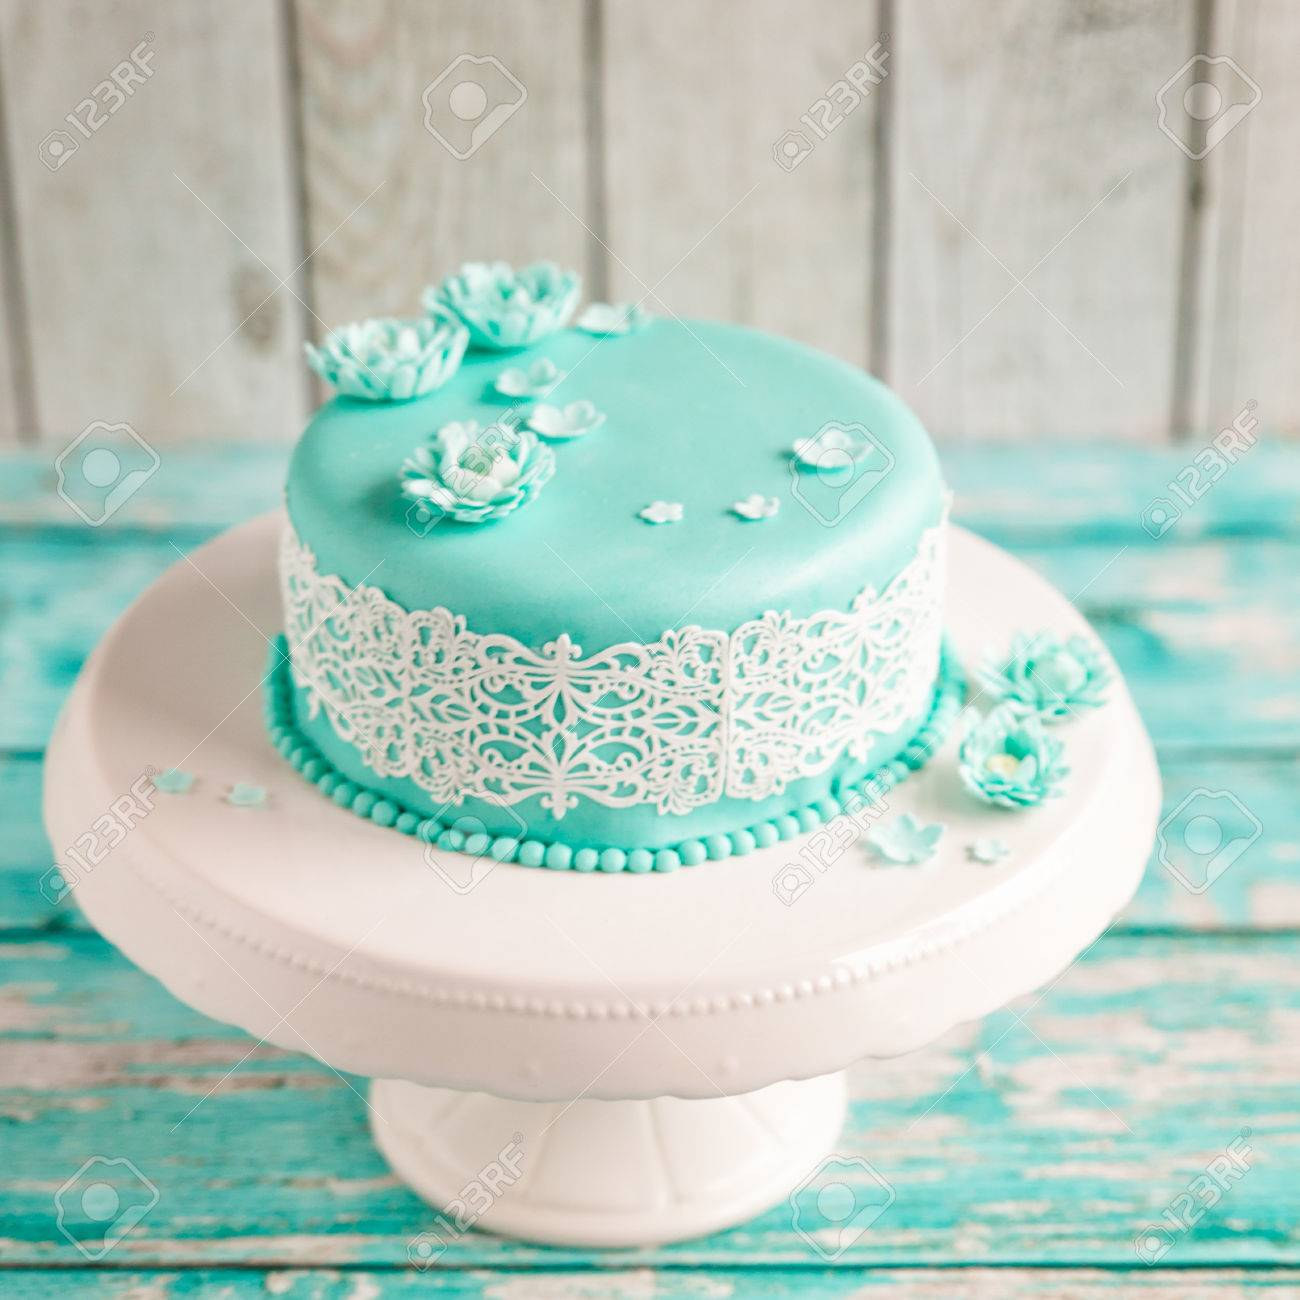 Wedding Cake With Turquoise Mastic And White Lace Icing Decorated